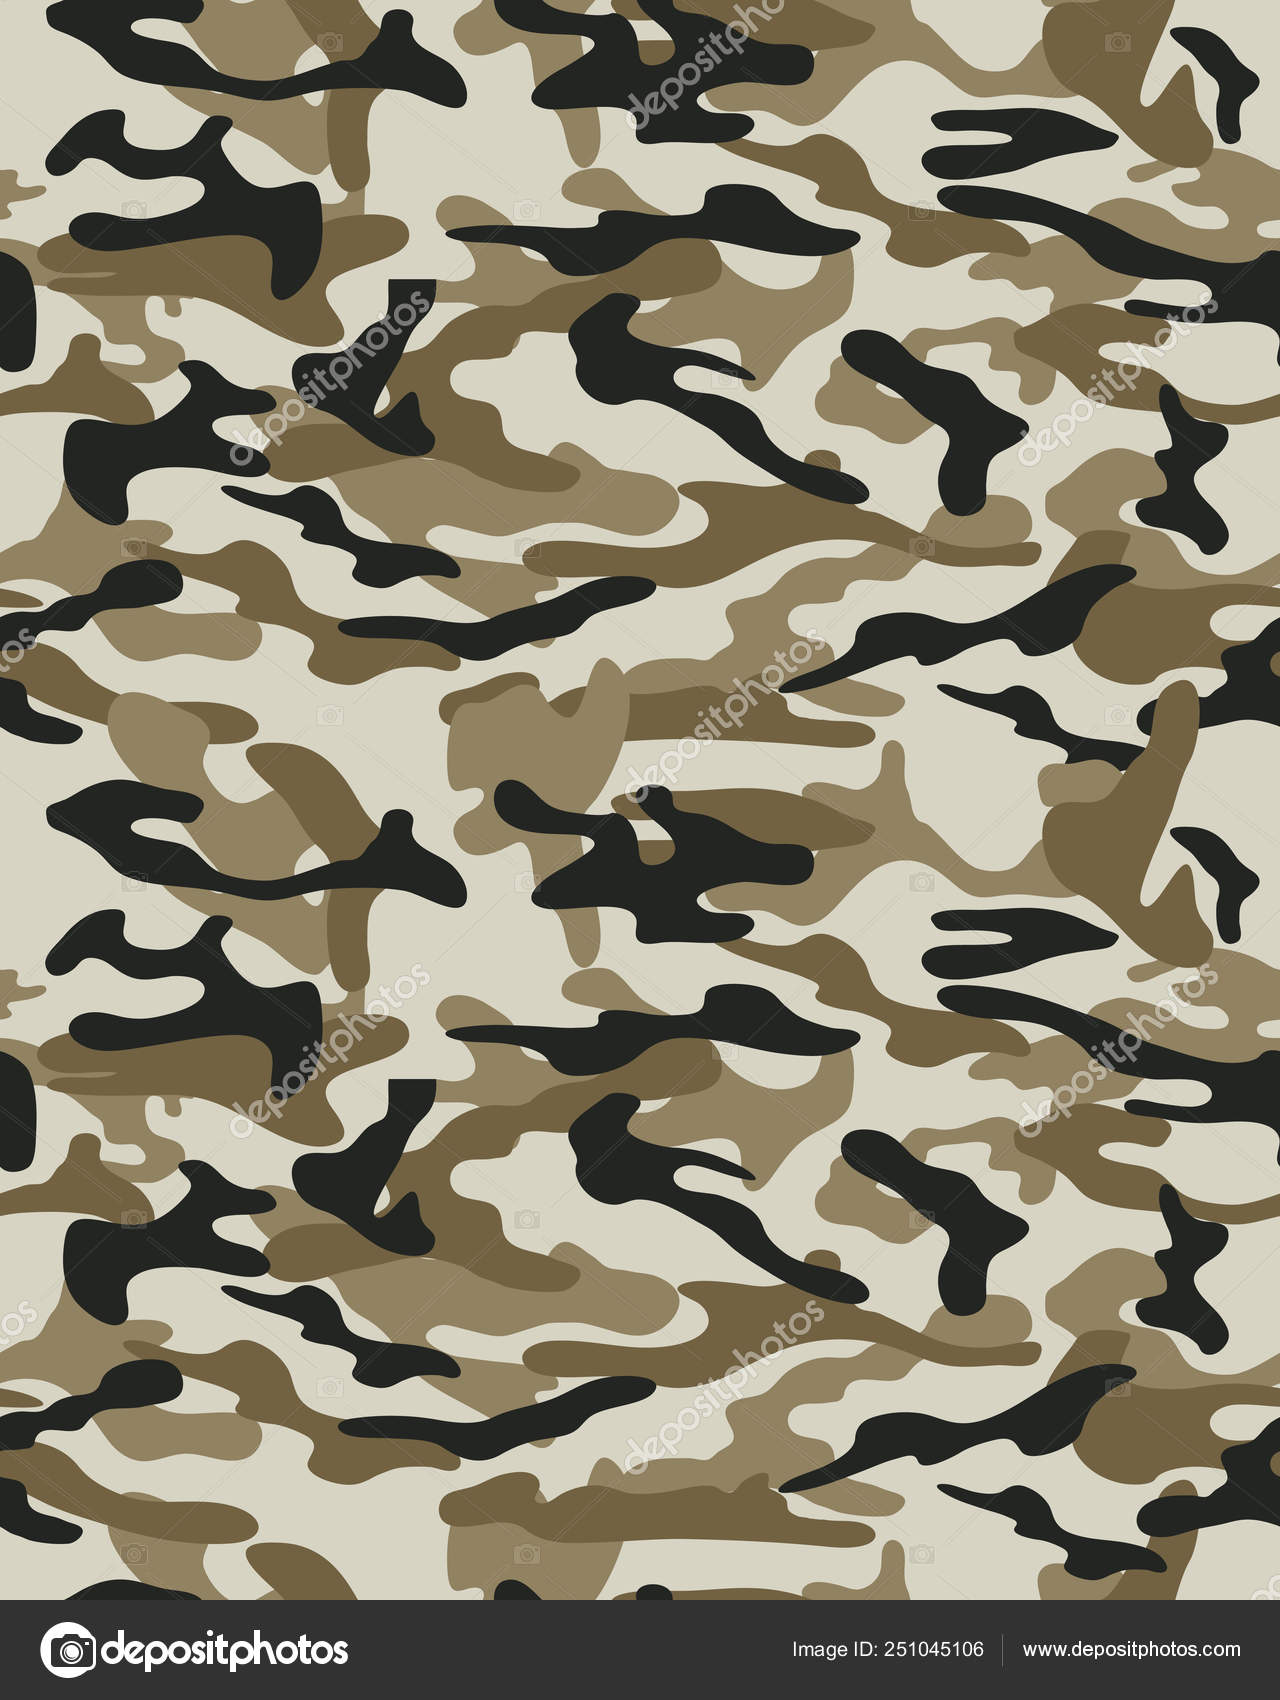 photograph regarding Camo Printable identify Picture: wallpaper navy Camouflage Behavior Seamless Armed service